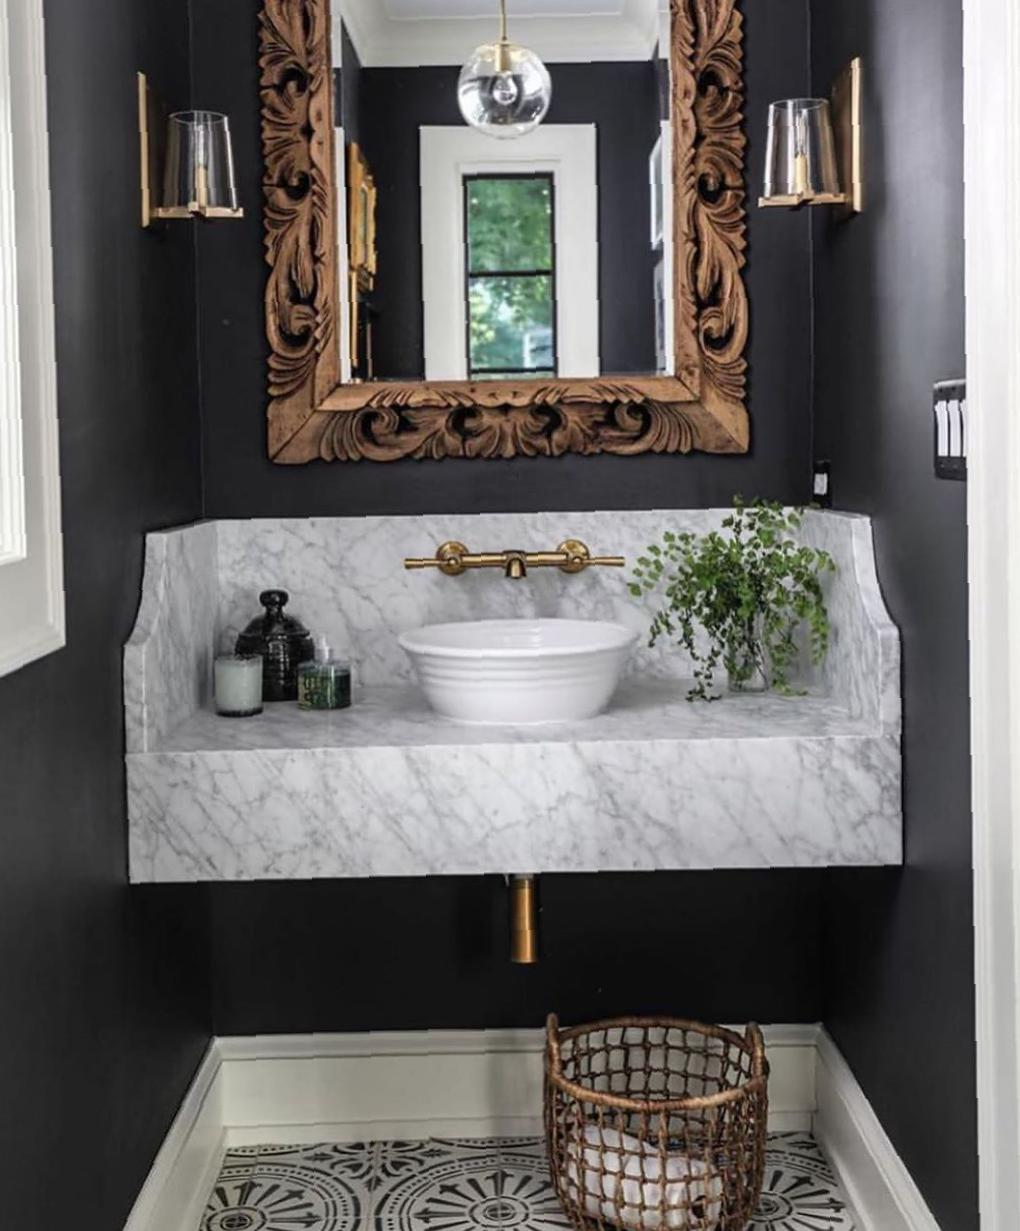 Beautiful Bathroom Decorations that Let Your Home Become More Warm and Comfortable! - Page 14 of 19 - Guide19 Blog